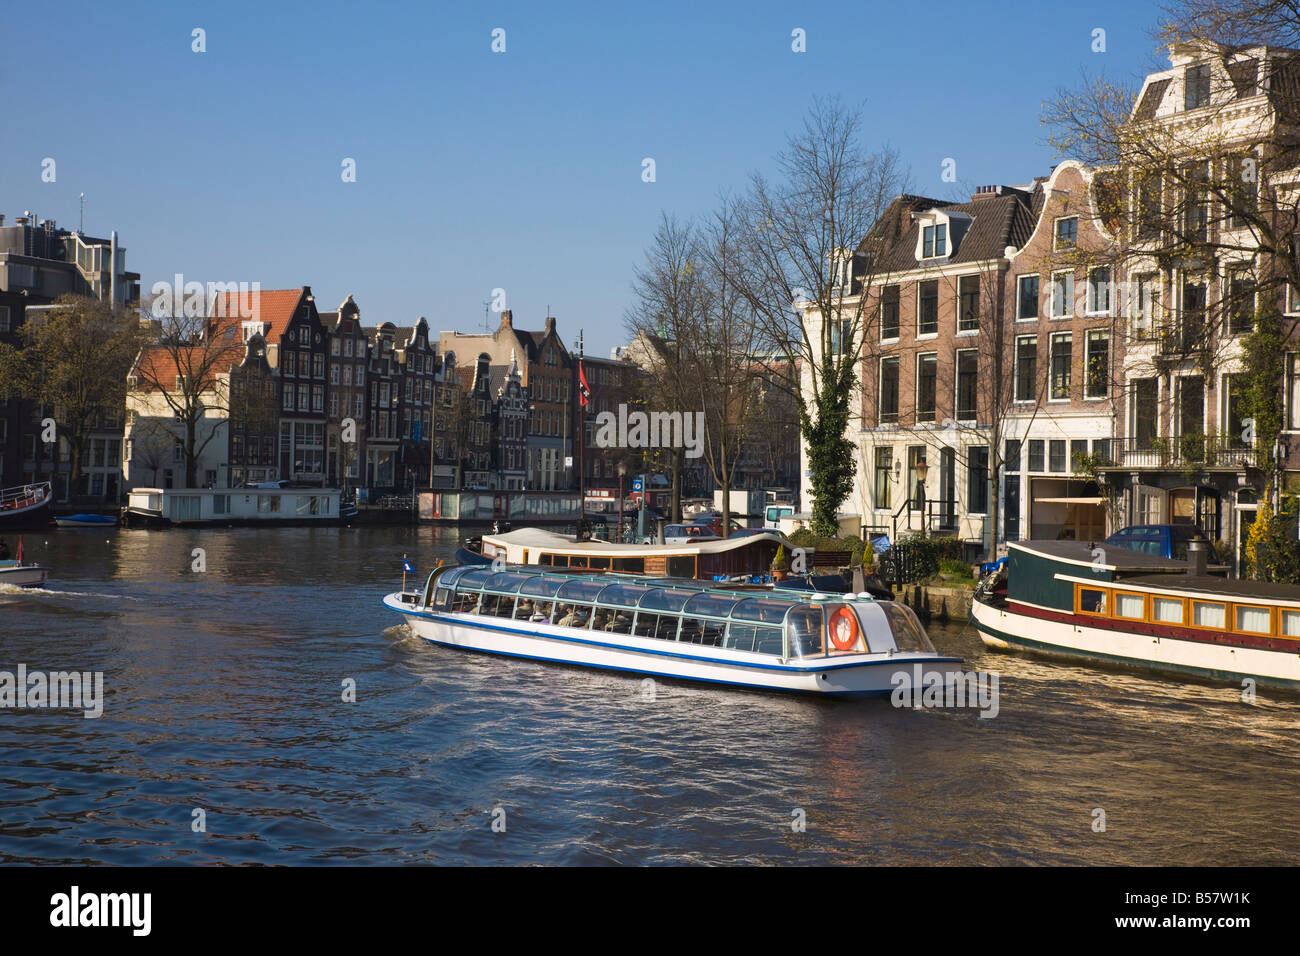 Herengracht canal stock photos herengracht canal stock for Herengracht amsterdam